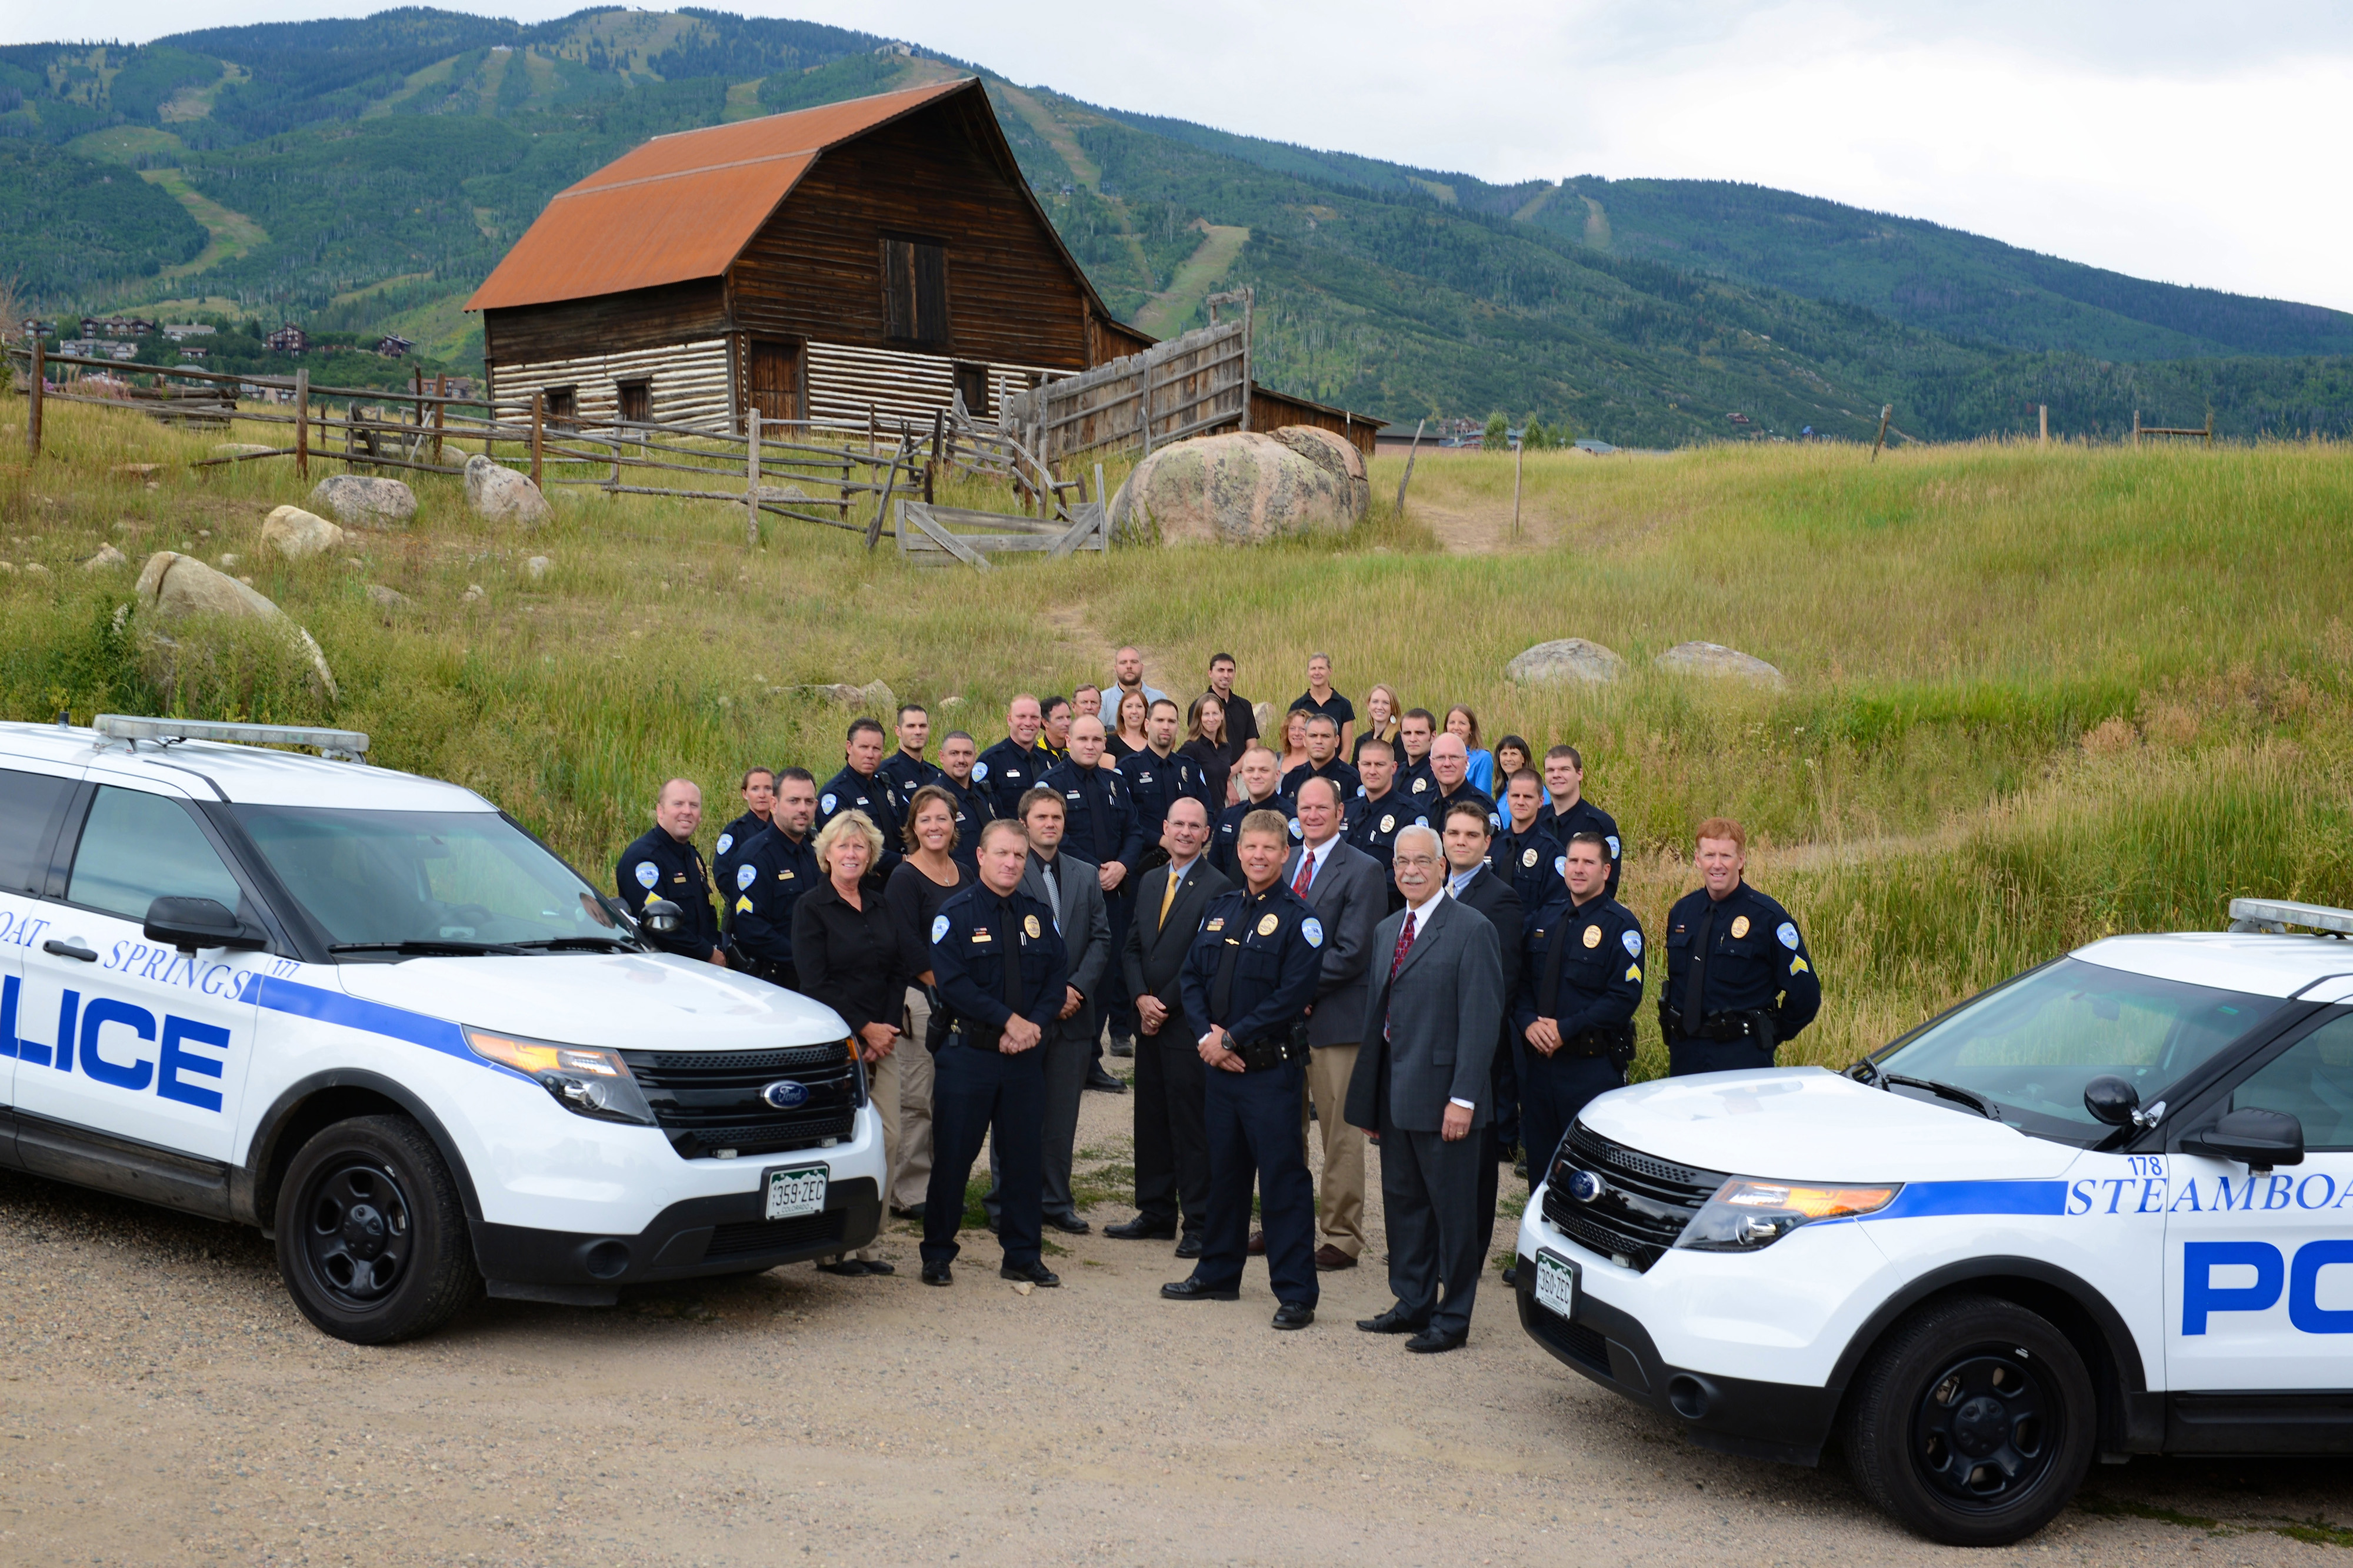 SSPD Group Photo